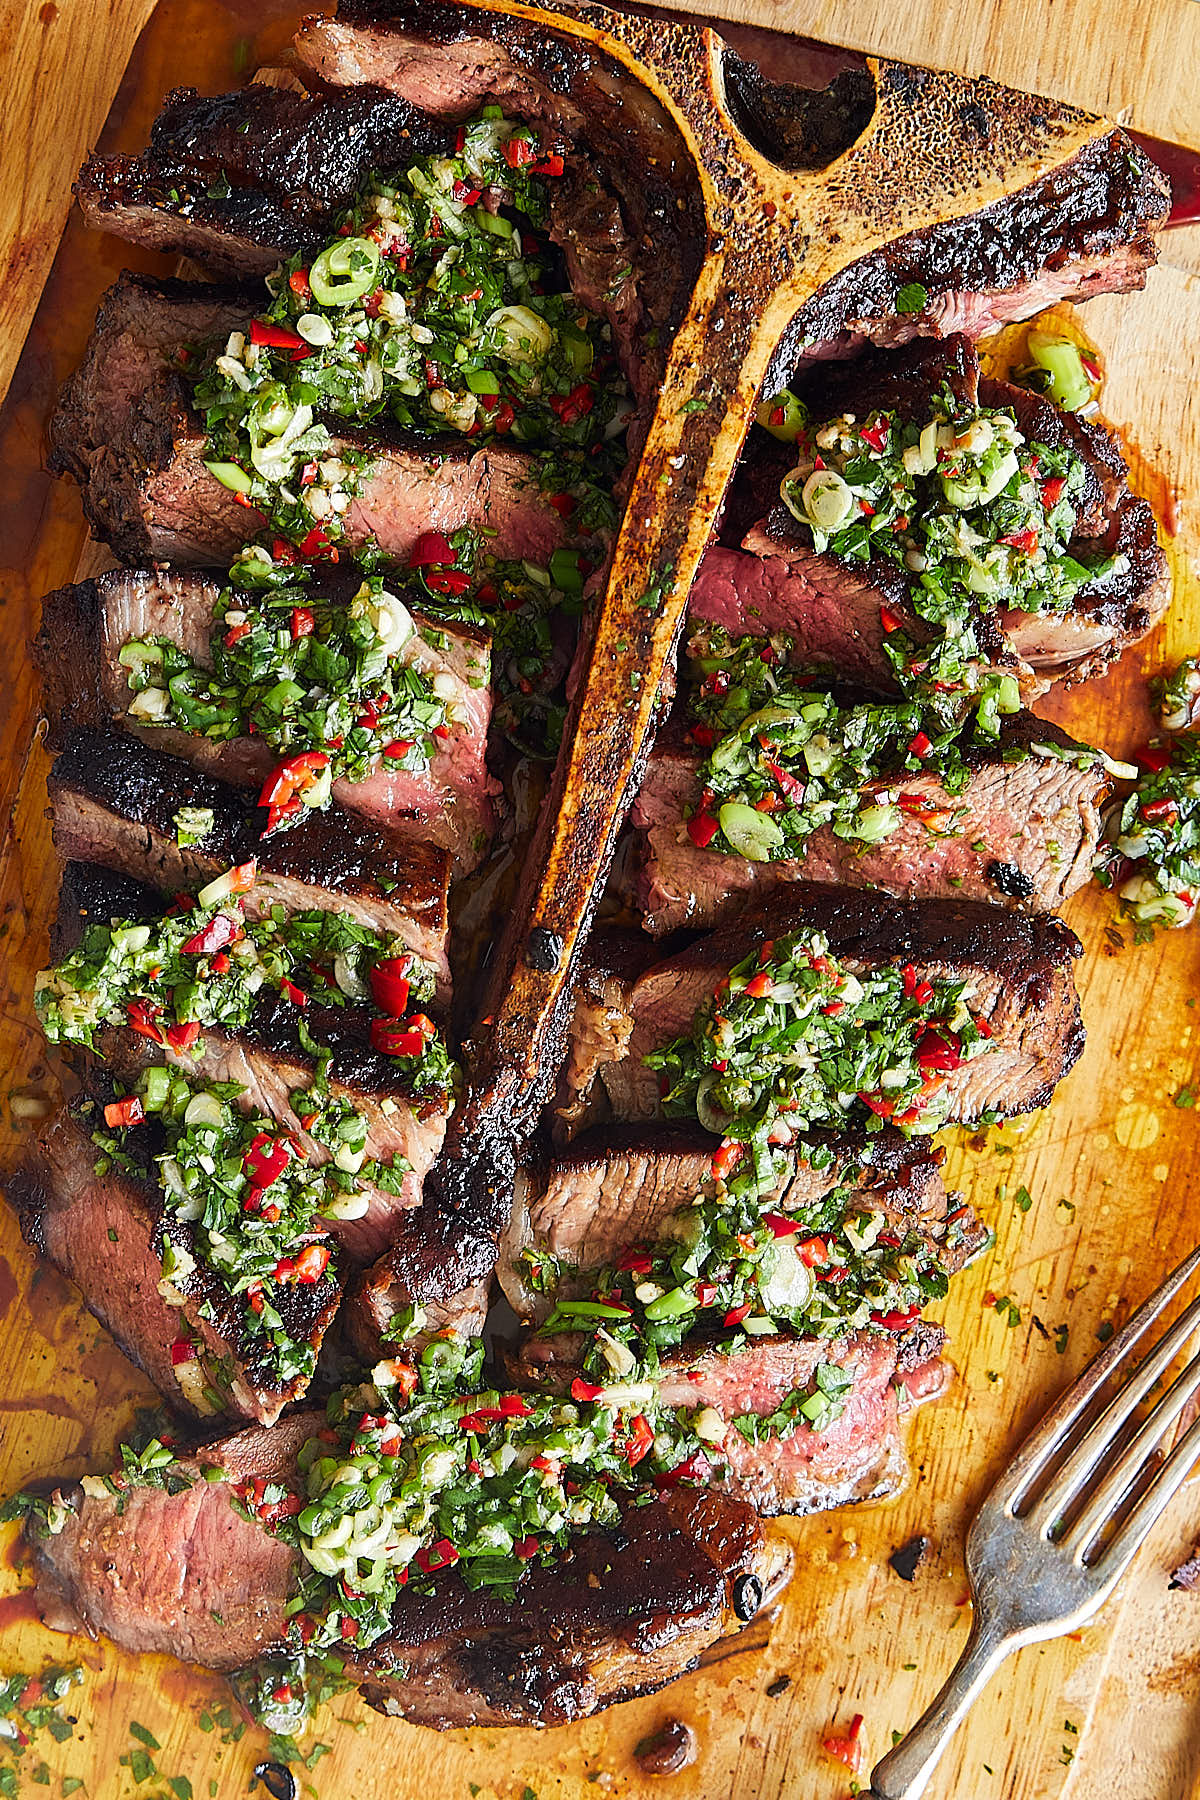 Sliced Porterhouse Steak with chimichurri on top.